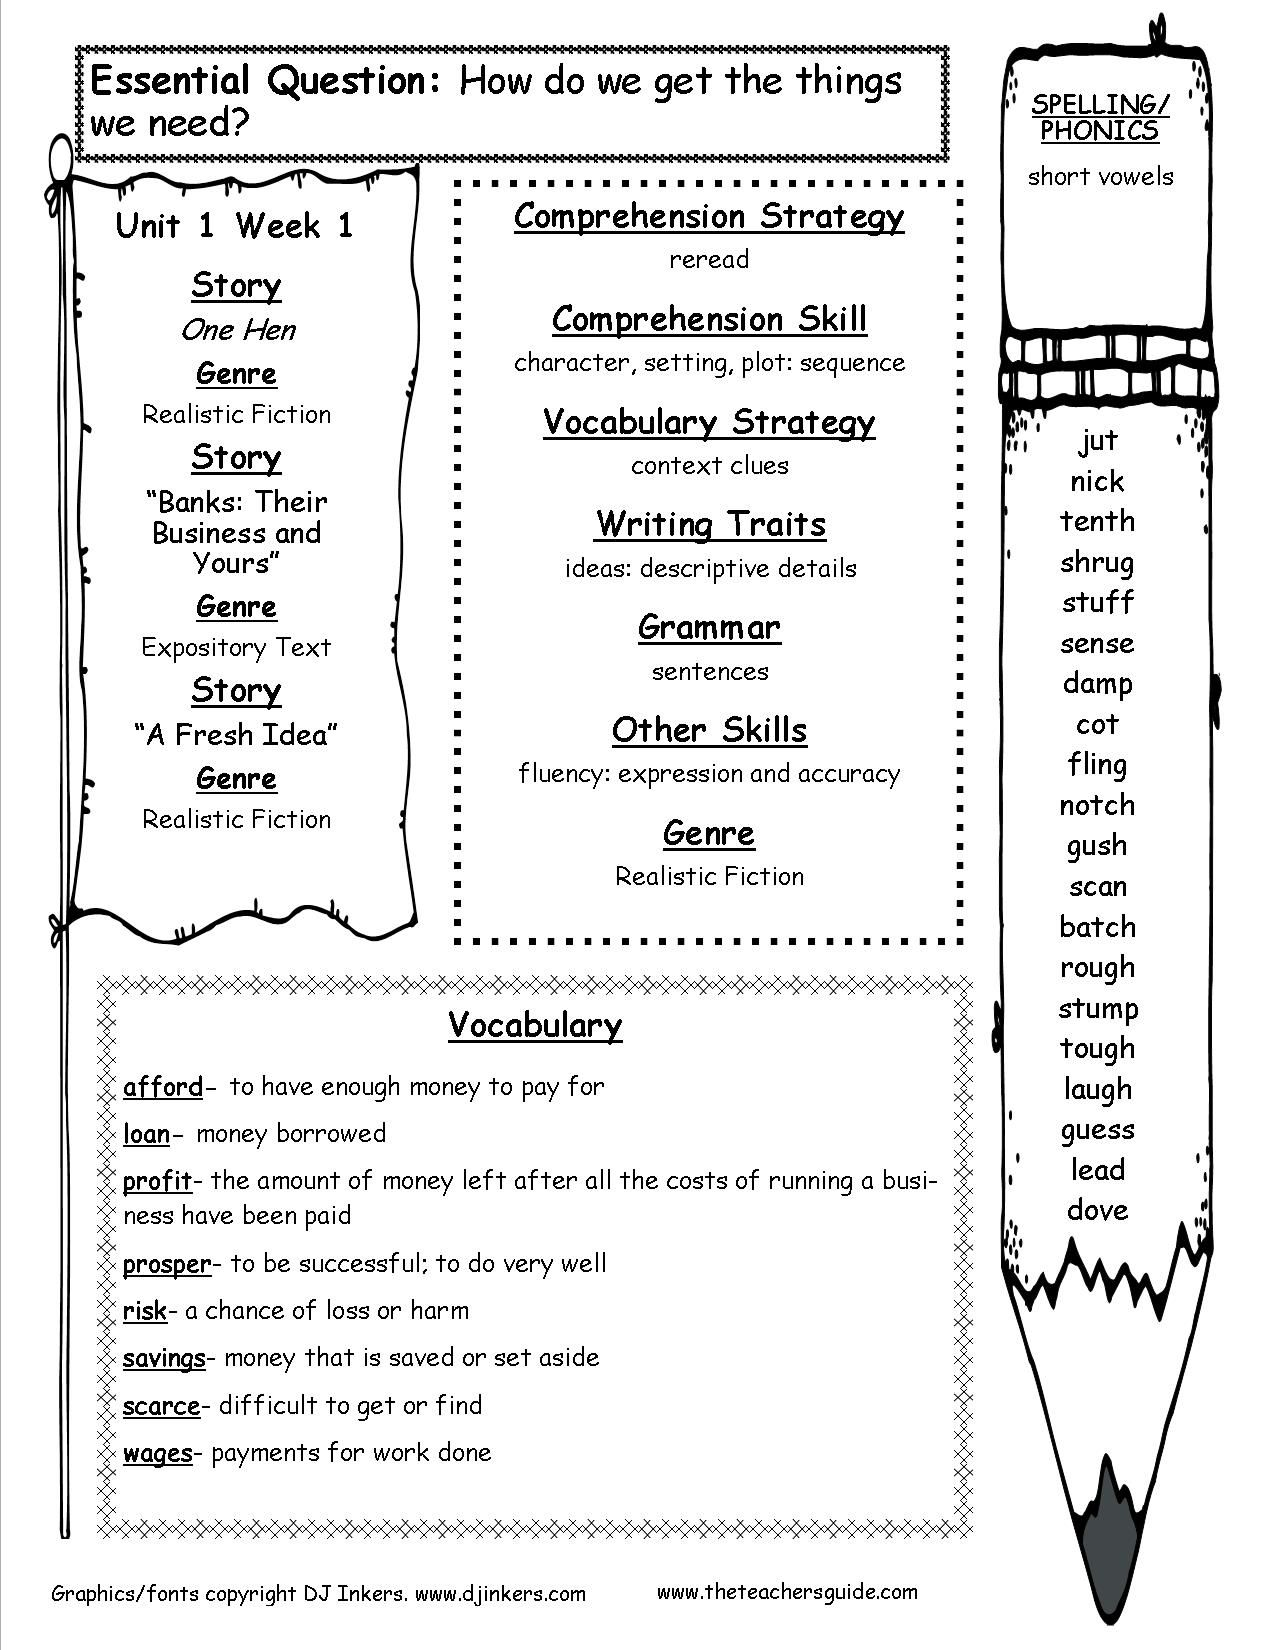 McGraw-Hill Wonders Fifth Grade Resources and Printouts   Second grade  resources [ 1650 x 1275 Pixel ]